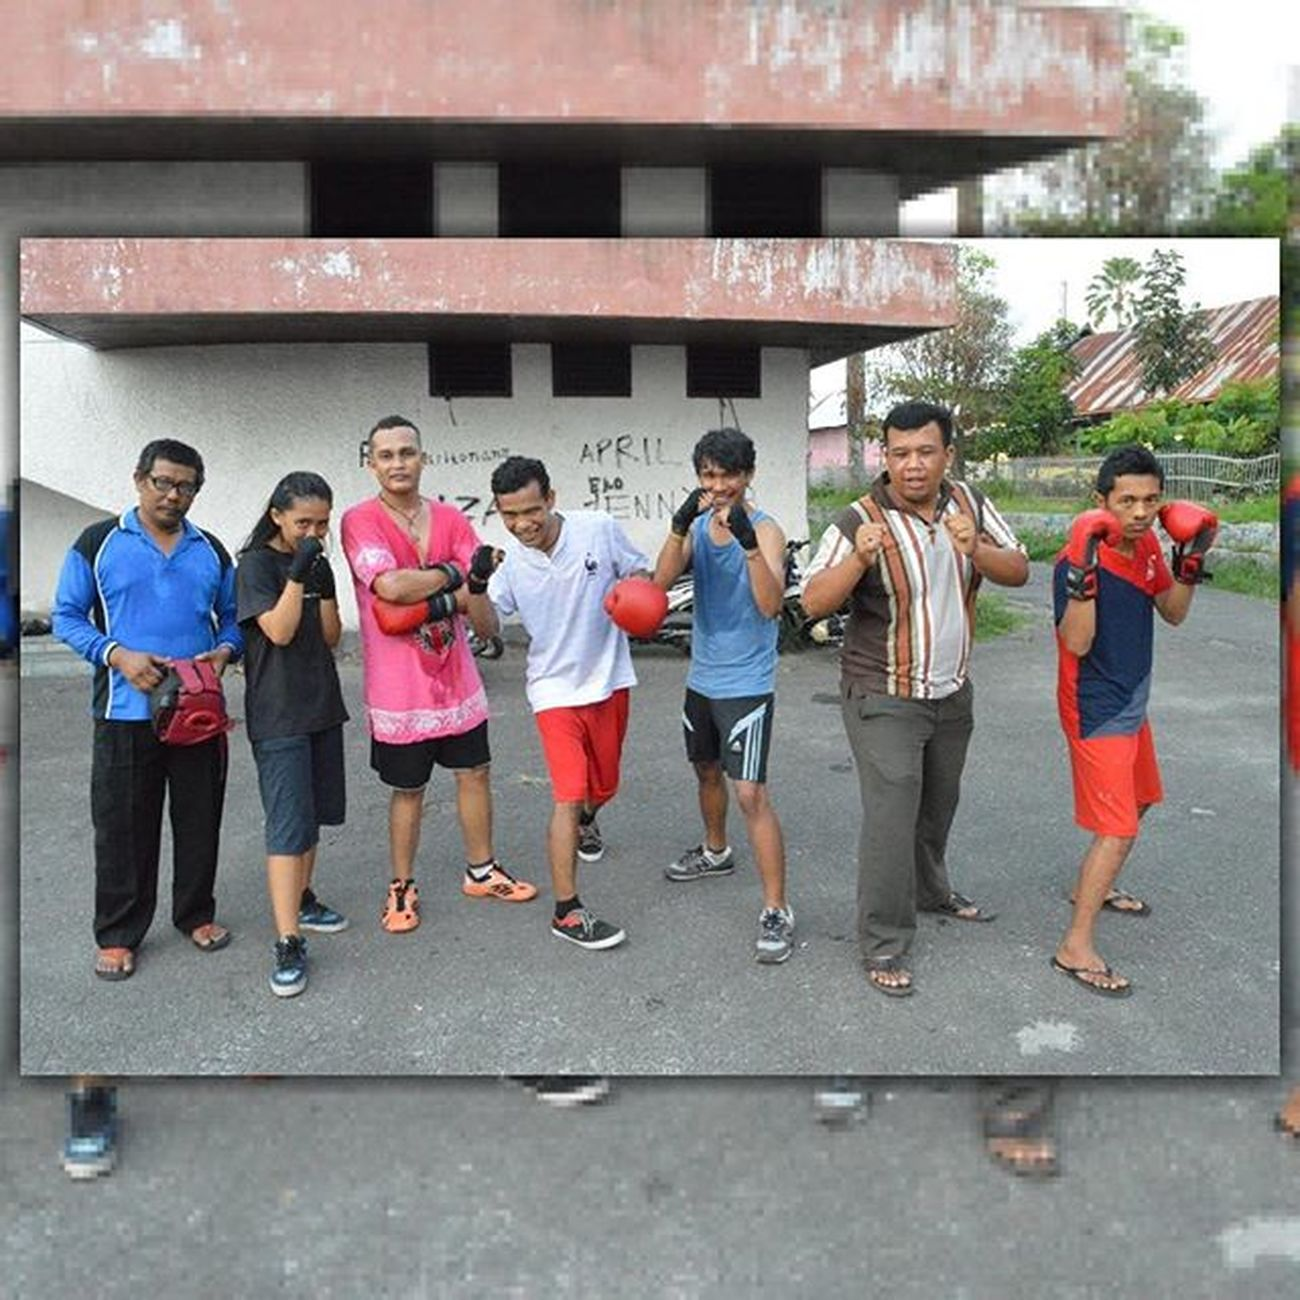 """PERTINA Simalungun"", we are the fighter, we not use luxury or expensive equipment we not use money we use talent...Tinju Tinjuindonesia Petinju Petinjuindonesia Boxing Boxer Fighter Sport Olahraga Koni INDONESIA"